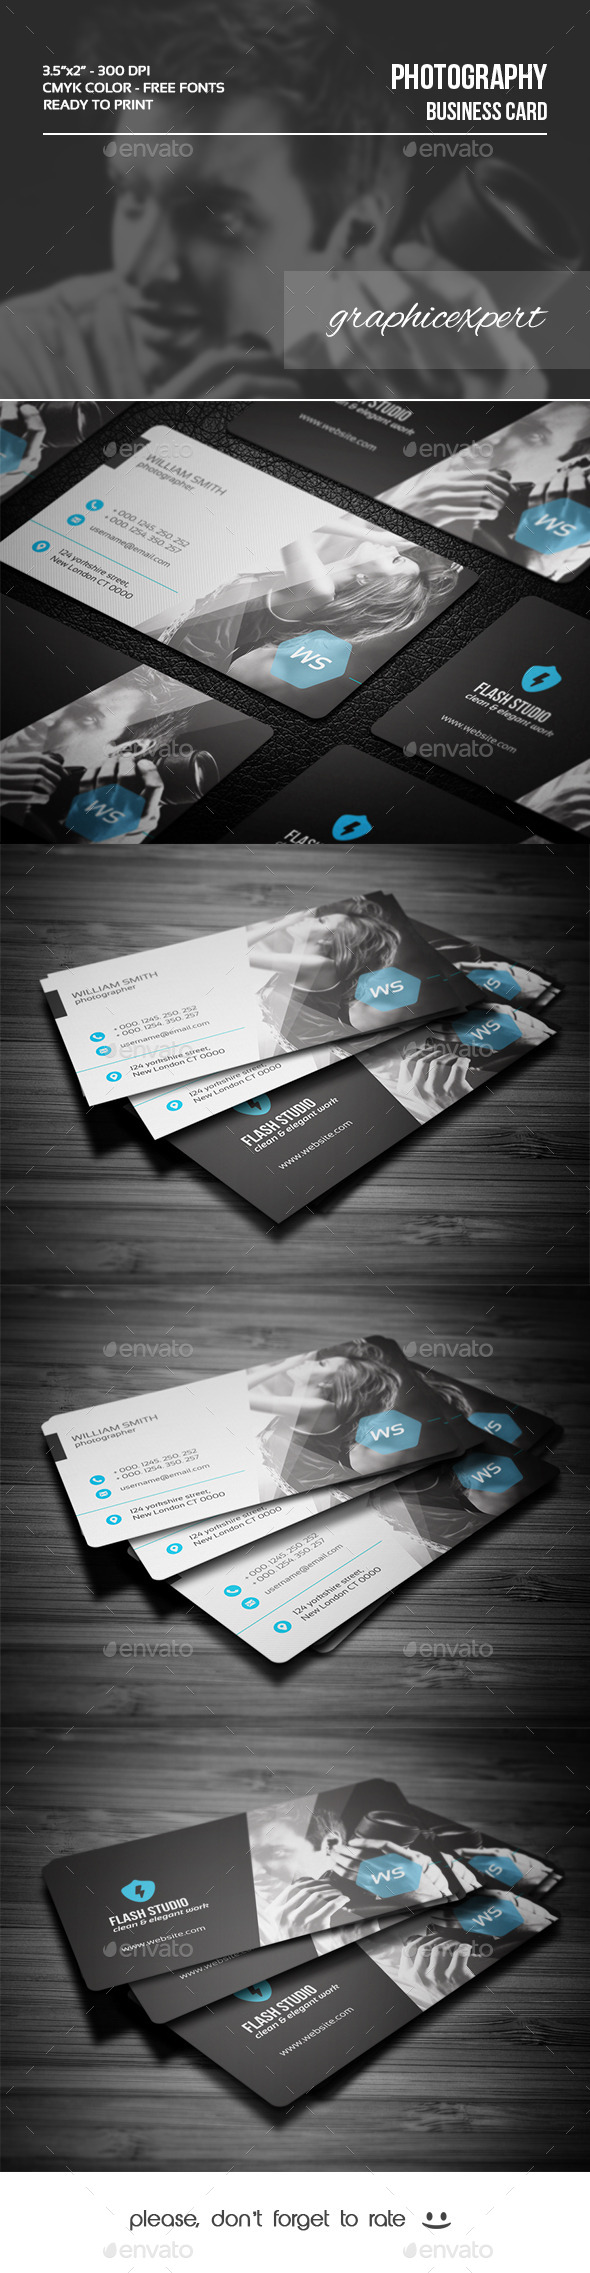 GraphicRiver Photography Business Card 9726782